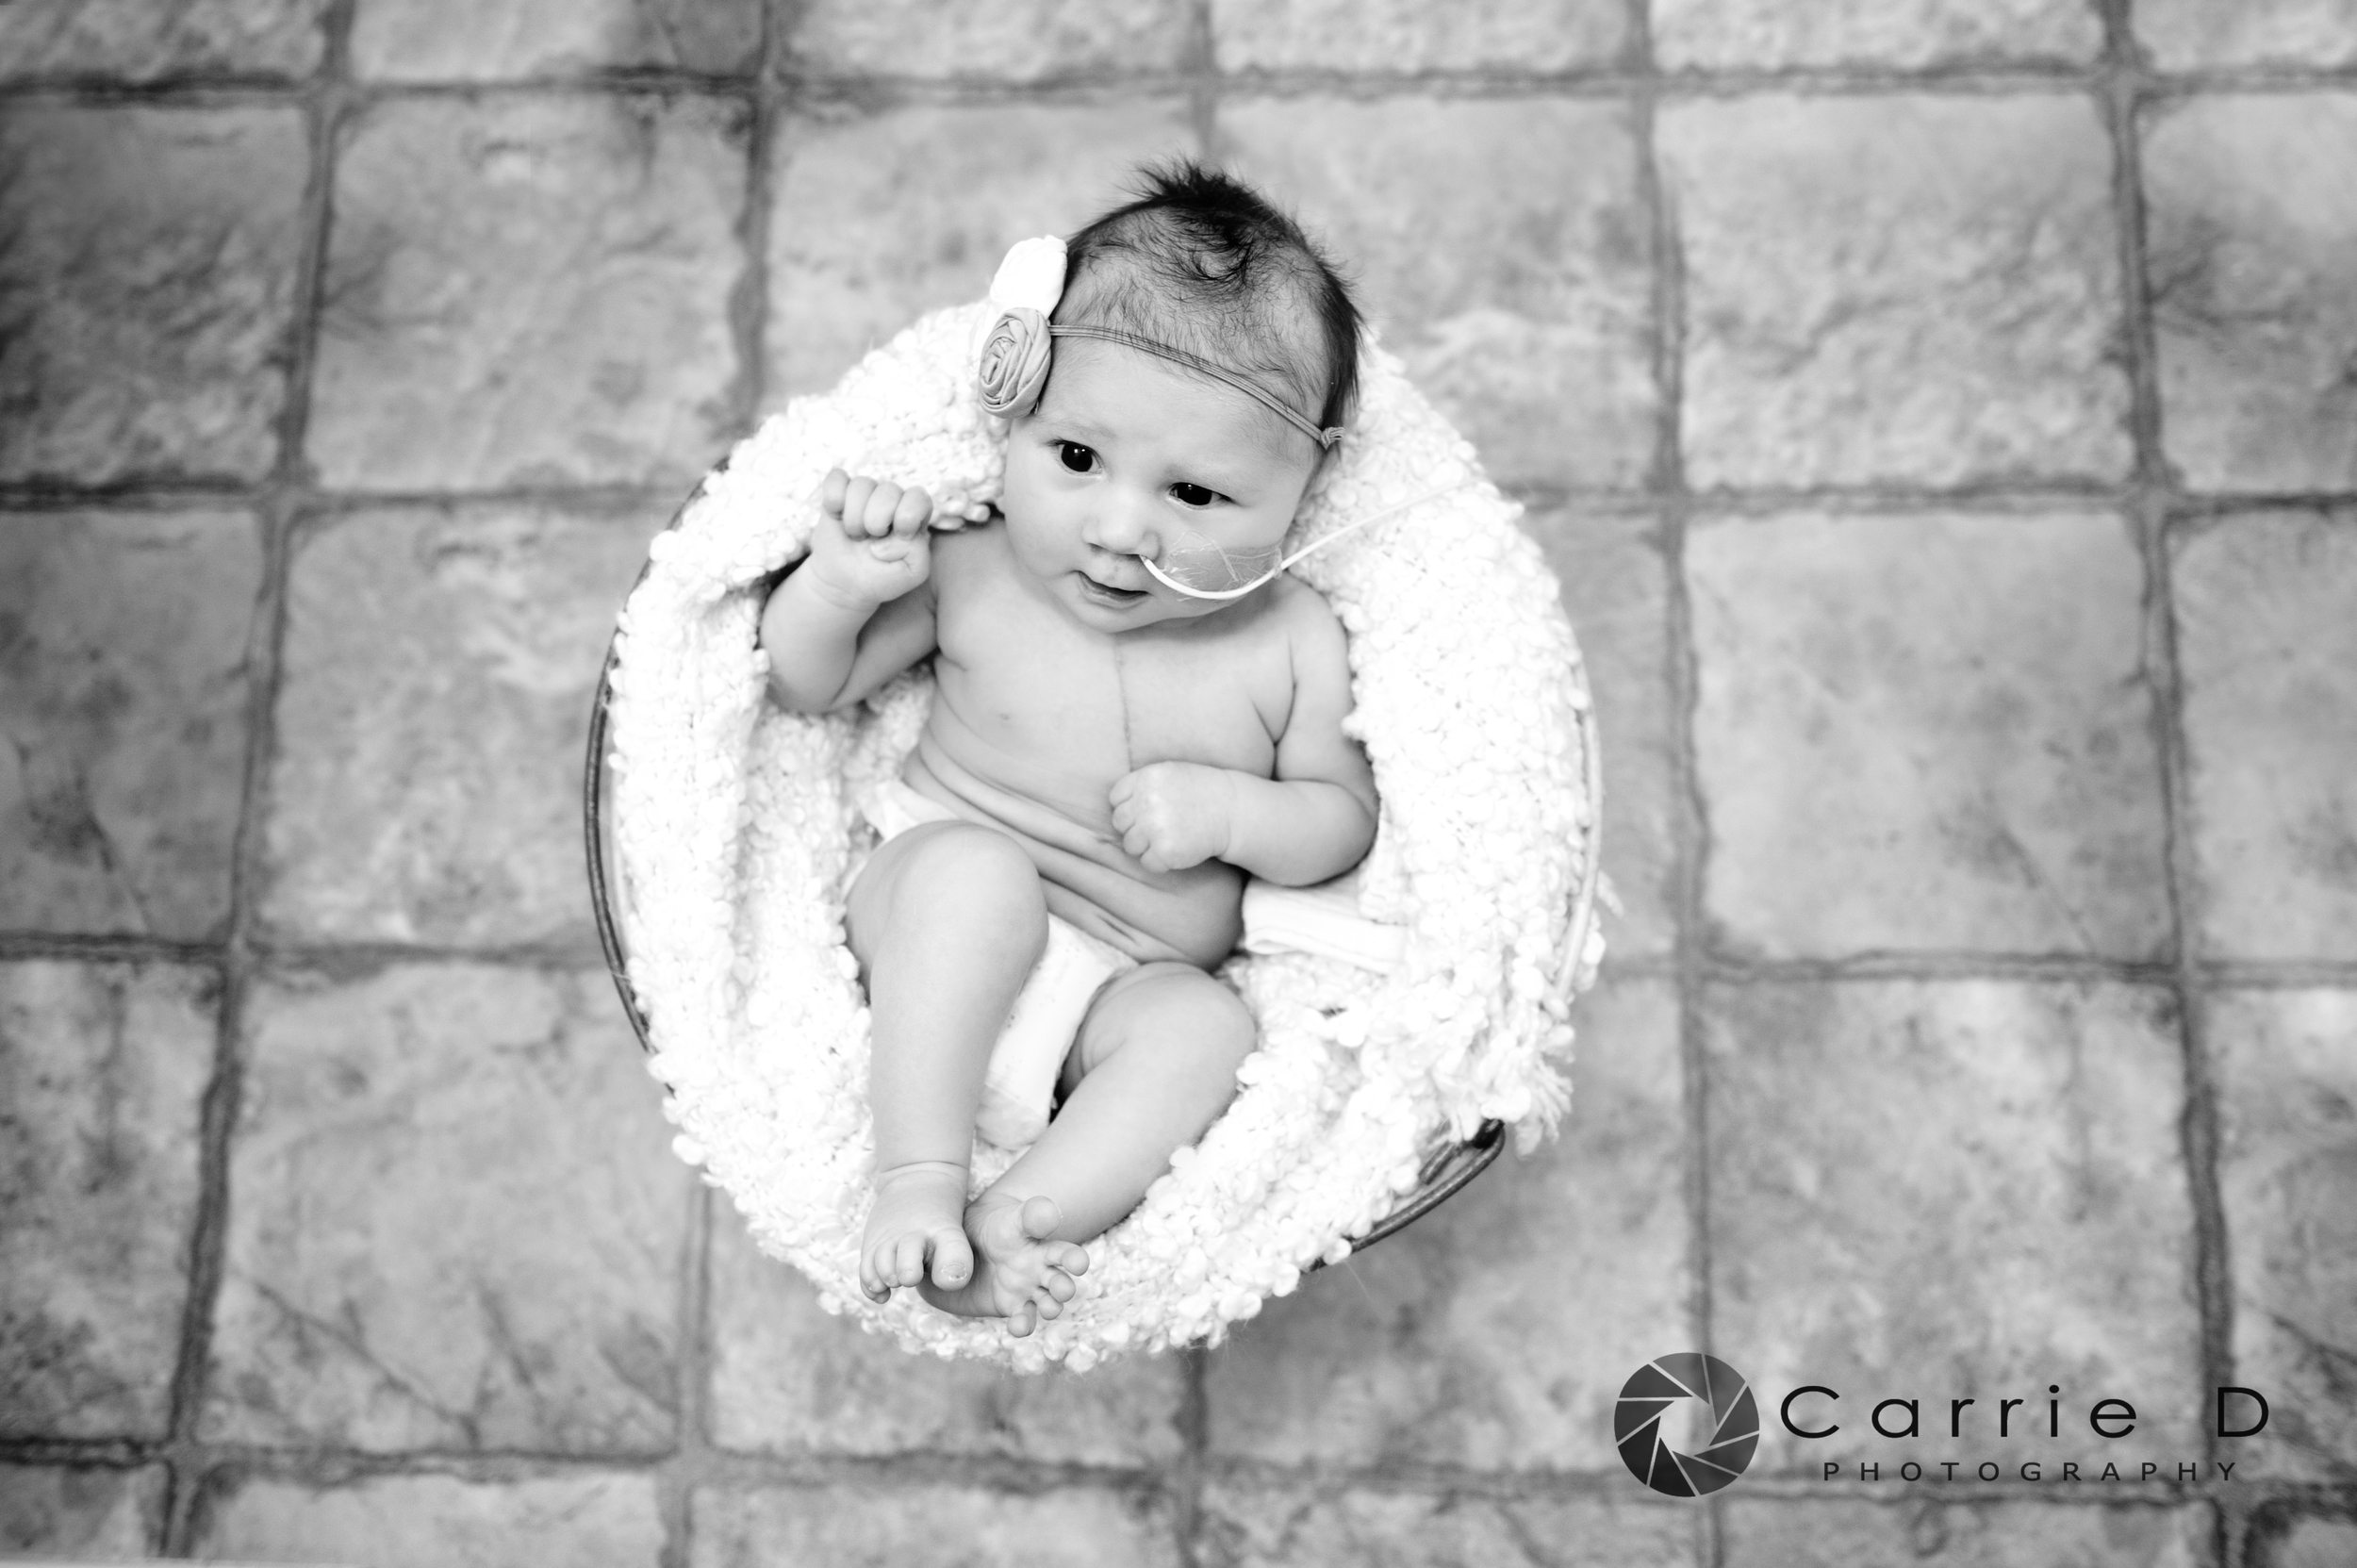 Annapolis Photographer – Annapolis Portrait Photographer – Annapolis Family Photographer - Annapolis Newborn Photographer – Annapolis Infant Photographer – Annapolis Sibling Photographer – Annapolis Natural Light Photographer – Annapolis Lifestyle Photographer – Annapolis Natural Light Portrait - Maryland Photographer – Maryland Portrait Photographer – Maryland Family Photographer - Maryland Newborn Photographer – Maryland Infant Photographer – Maryland Sibling Photographer – Maryland Natural Light Photographer – Maryland Lifestyle Photographer – Maryland Natural Light Portrait  - Sophia_DSC_2479B